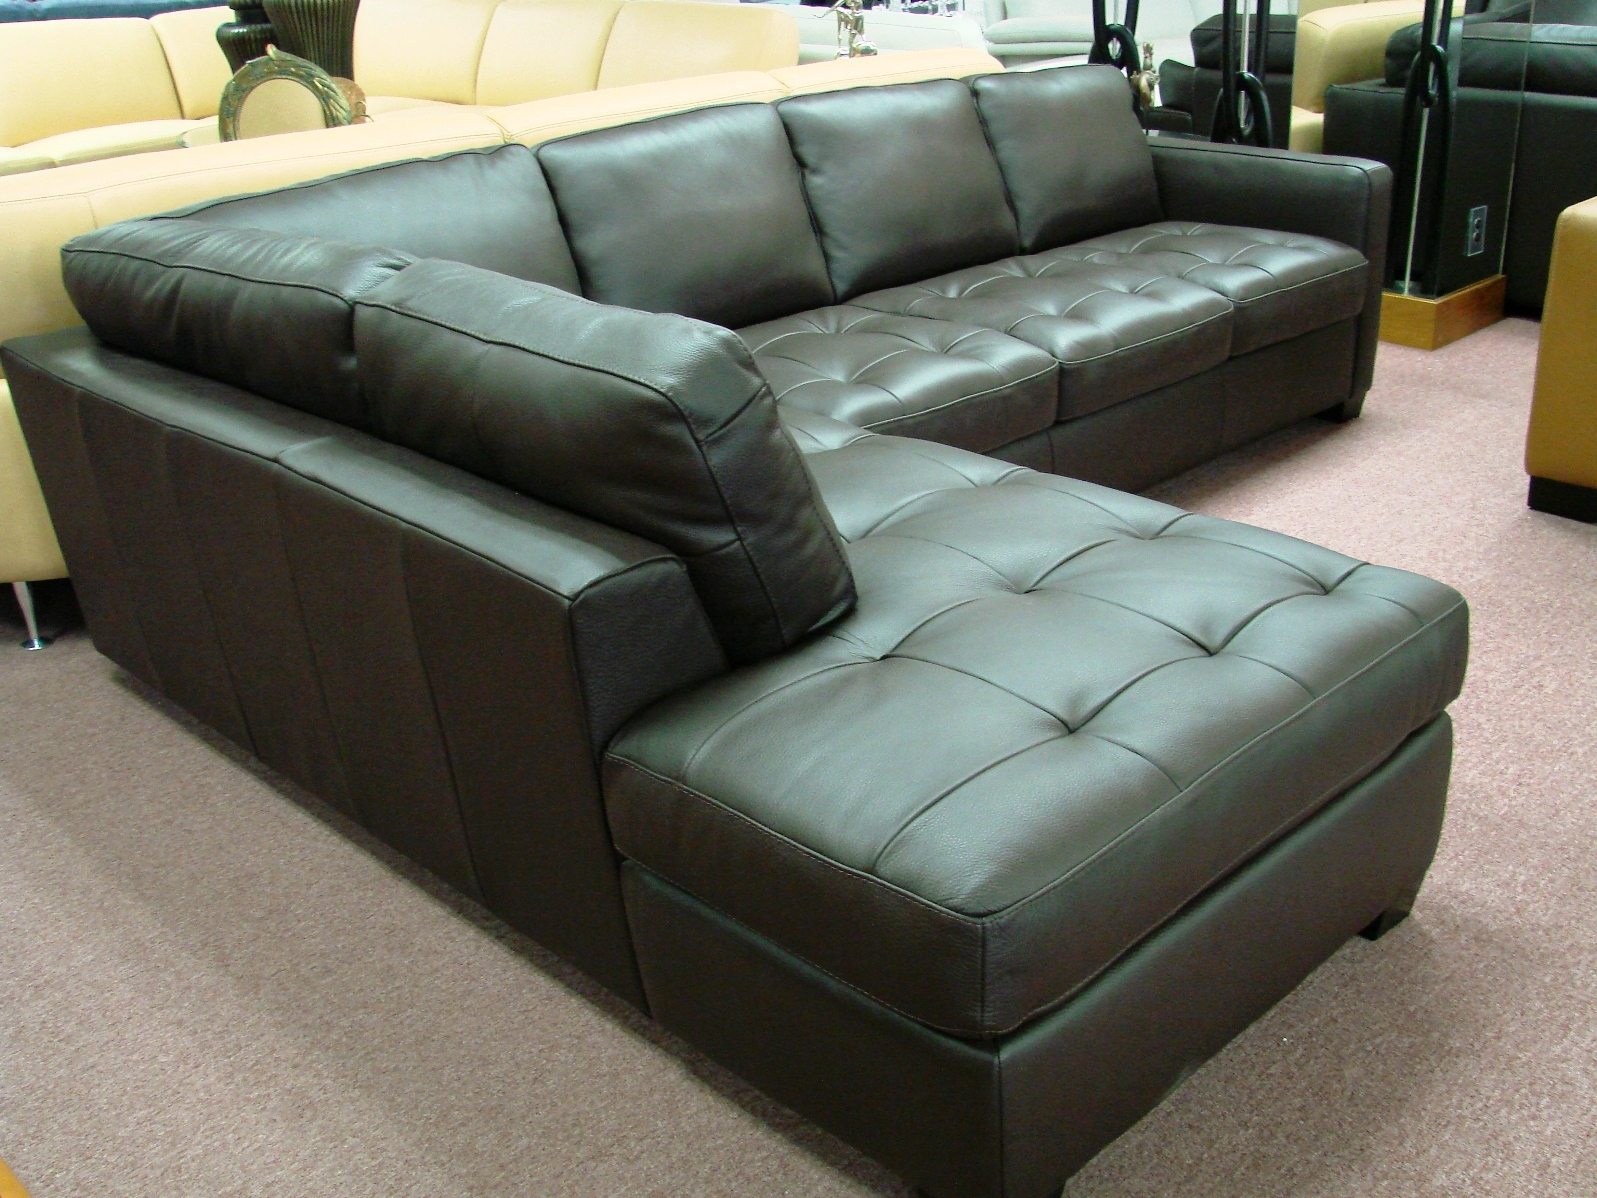 Natuzzi leather sofas sectionals by interior concepts furniture brand new leather sofas by - Sofas natuzzi ...